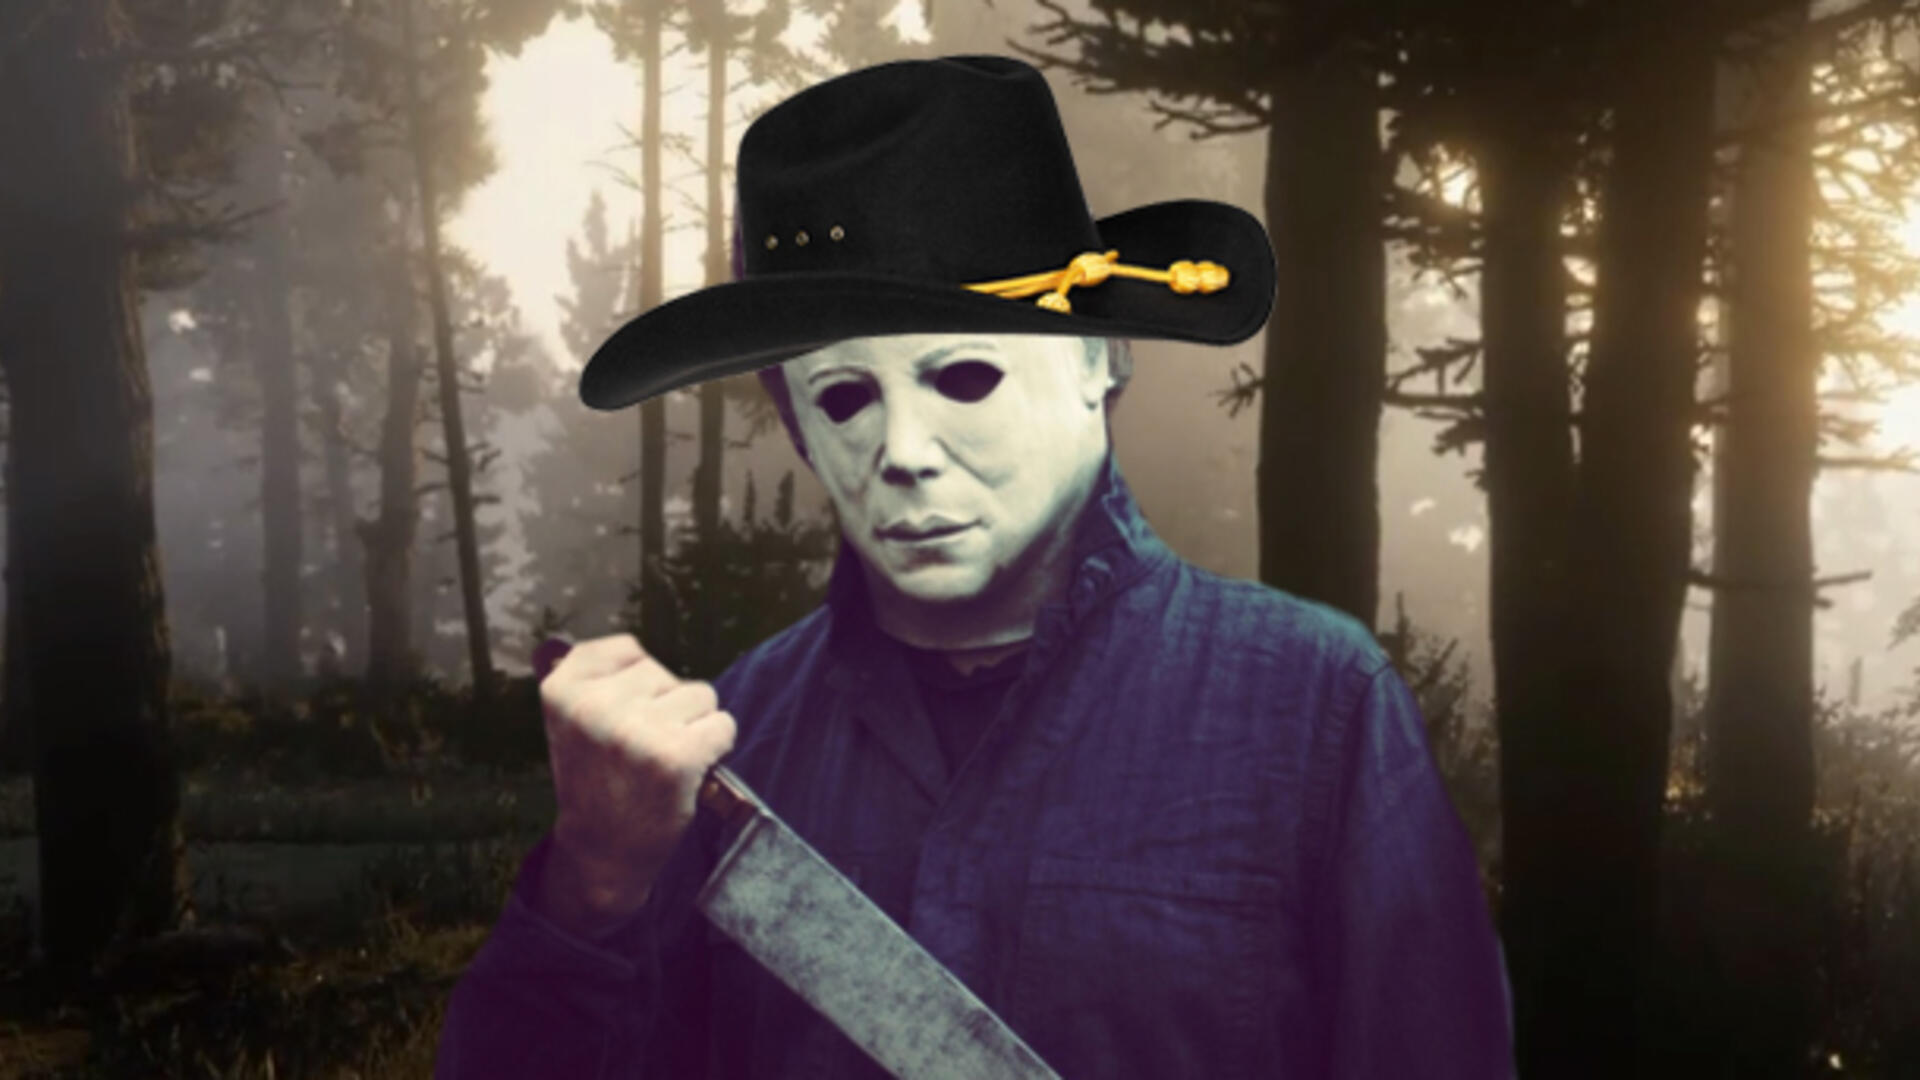 Red Dead Redemption 2 Made Me an Accidental Horror Movie Villain